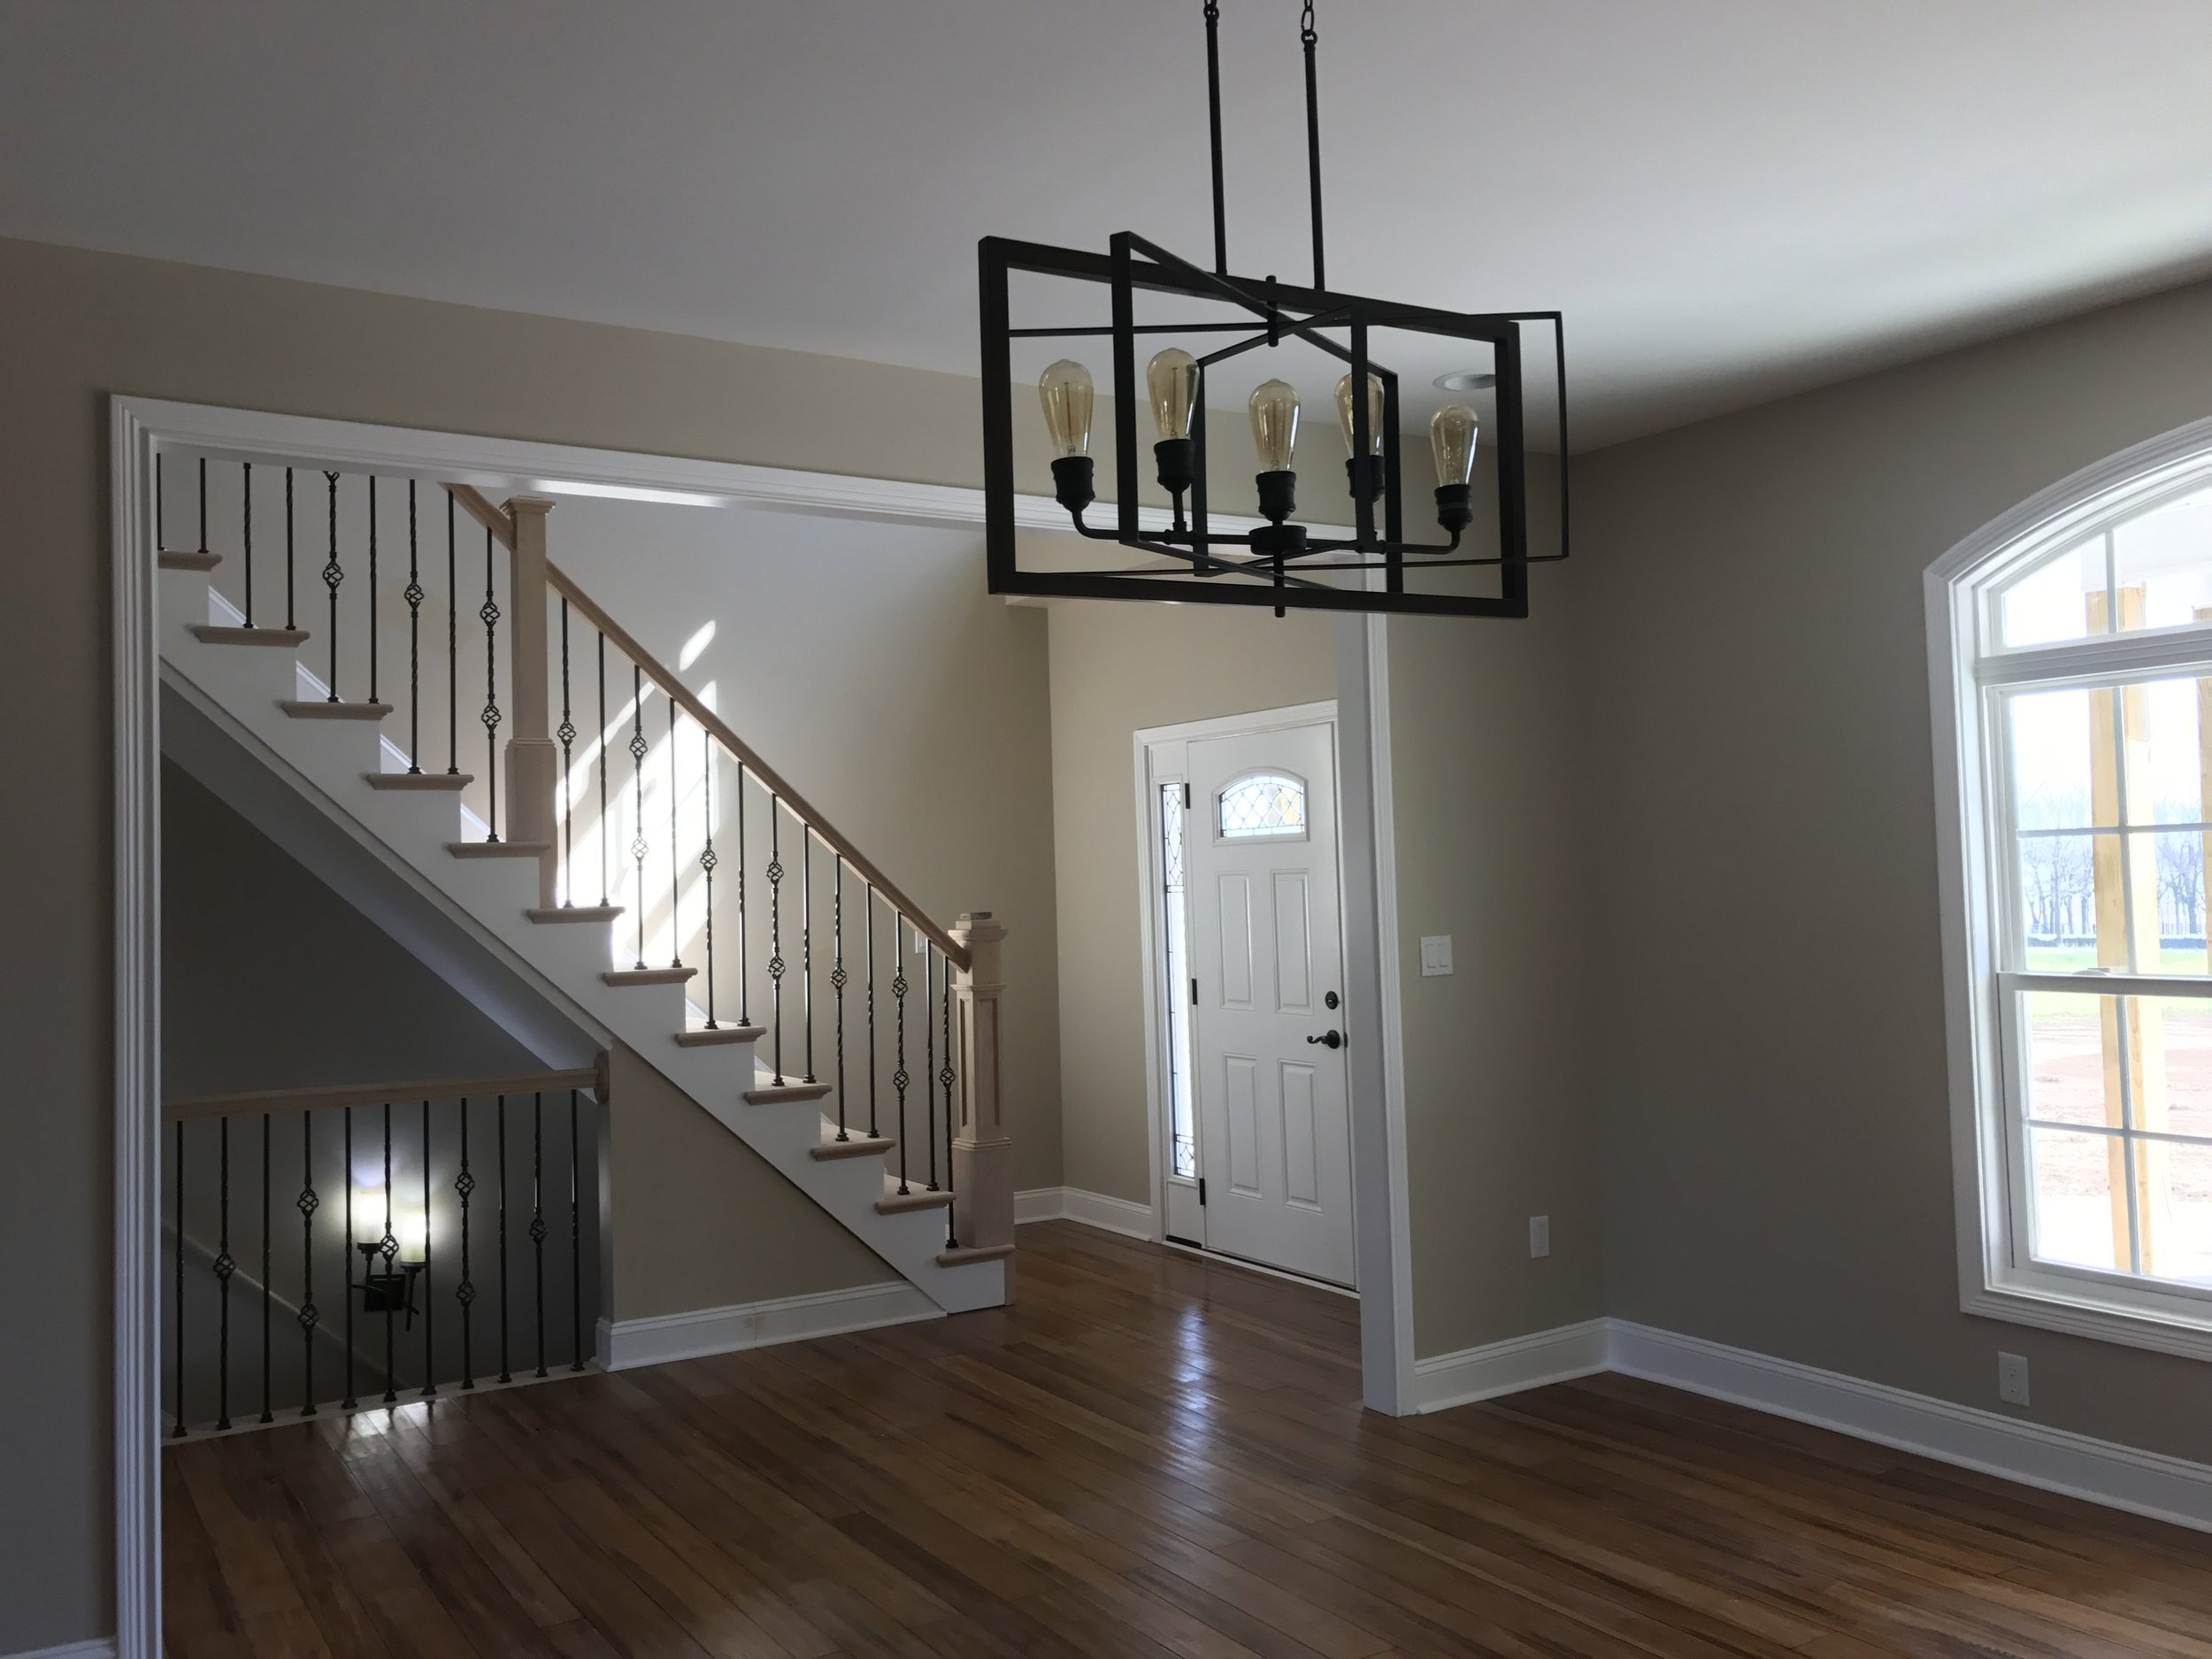 Beautiful lighting throughout this Spacious Splendor, gives this home just the right finishing touch.